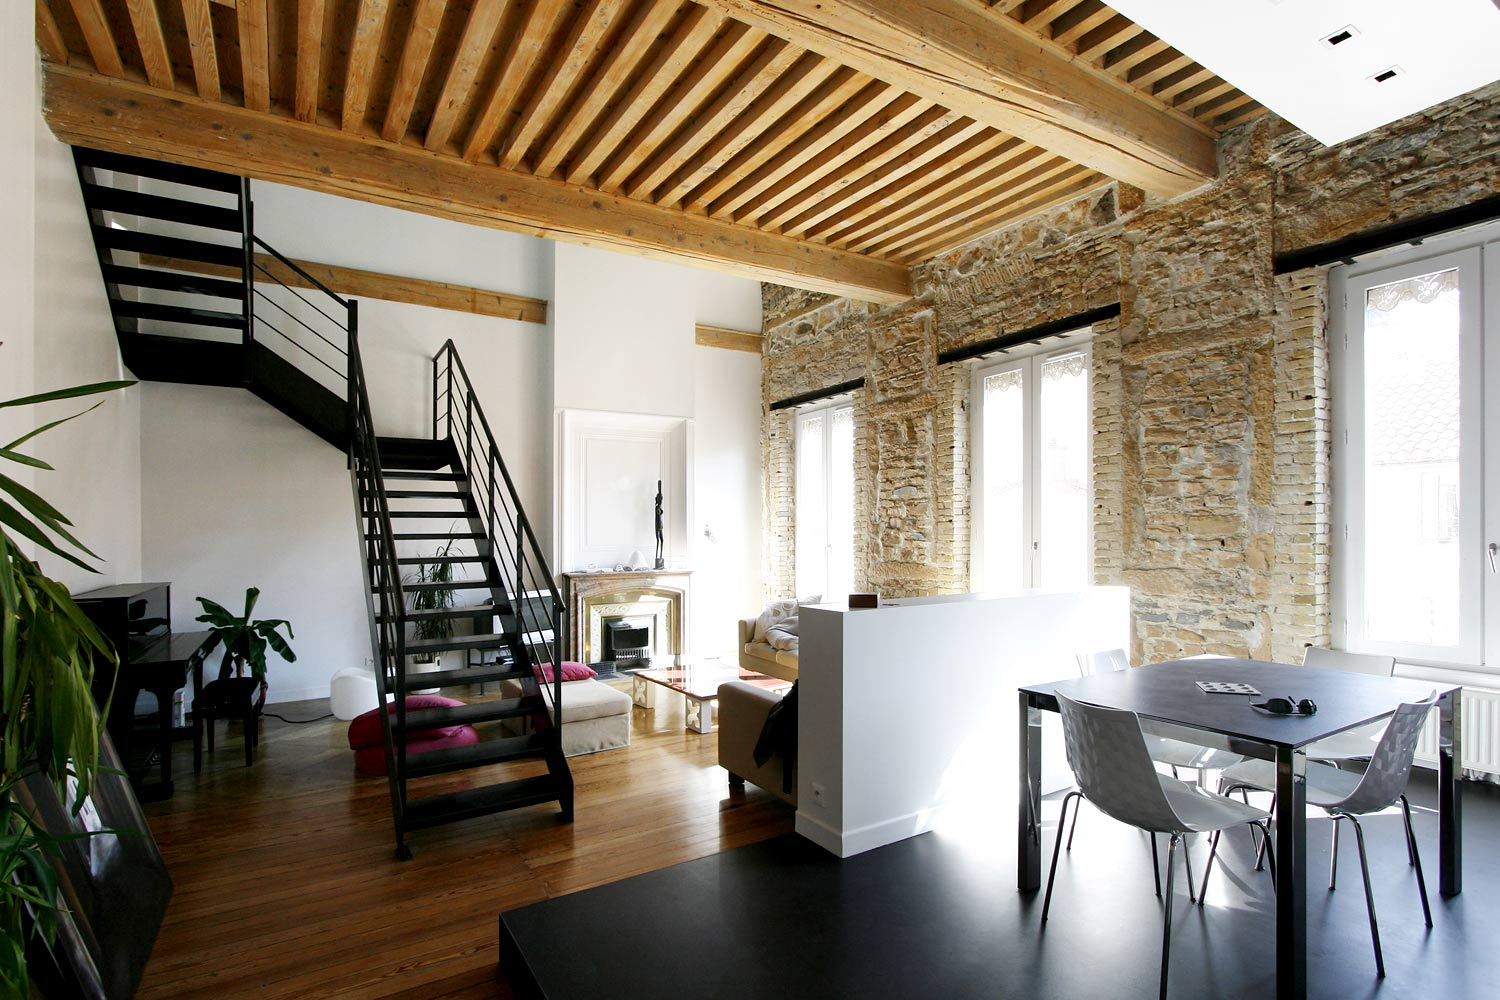 Location Appartement Angers Un Placement Intelligent